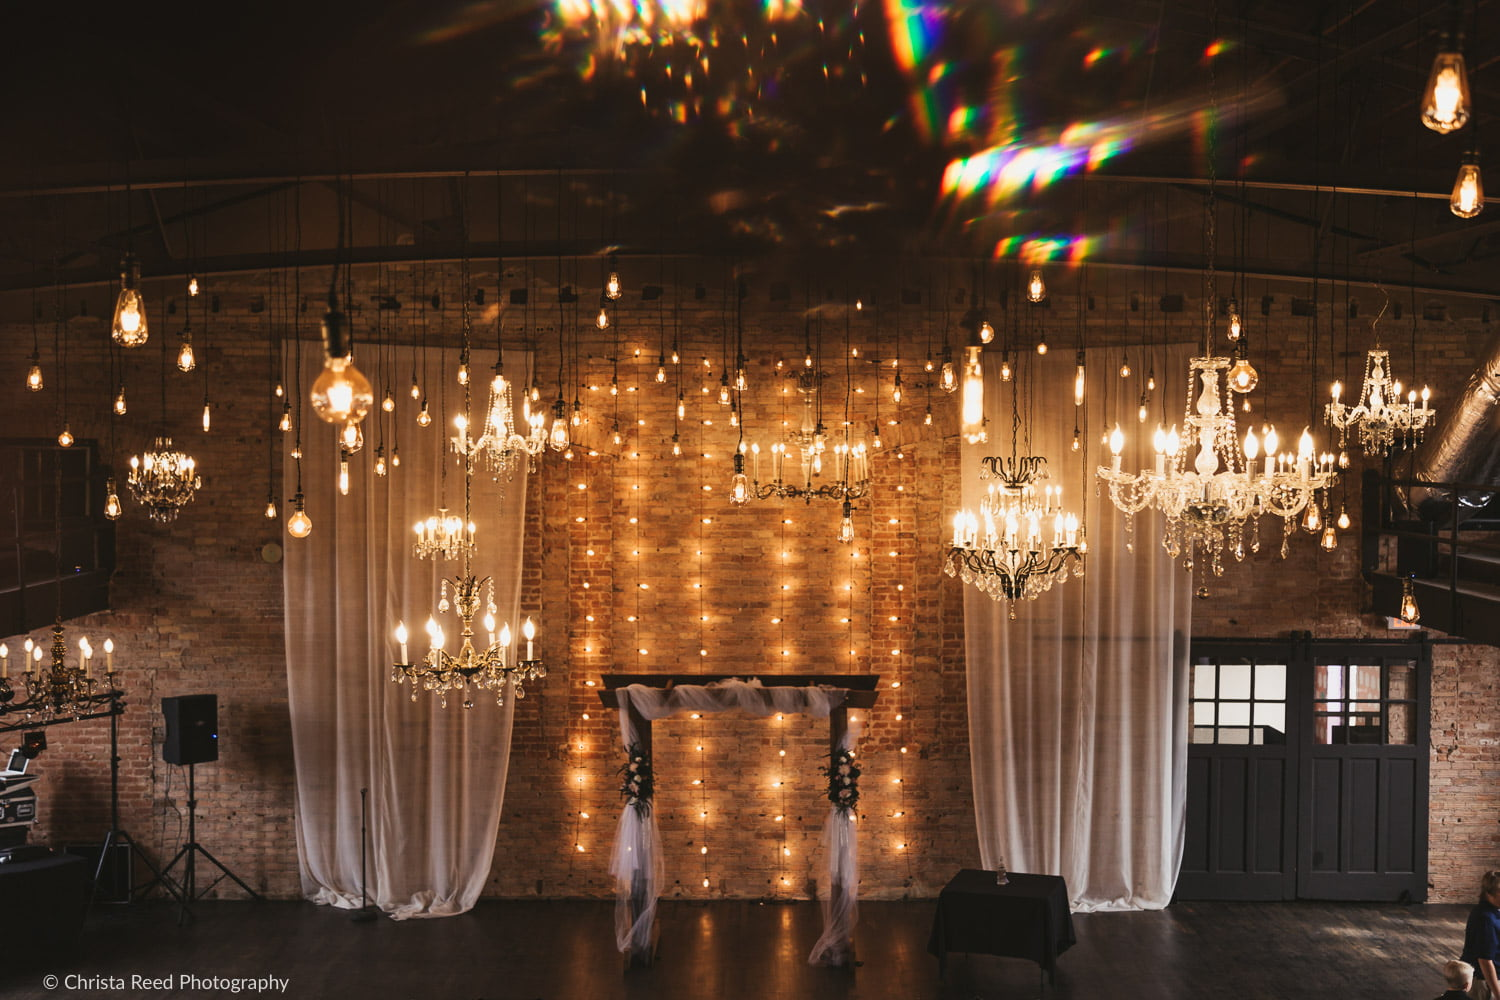 Edison lights hang from the ceiling at the historic Capitol Room wedding venue in St. Peter Minnesota